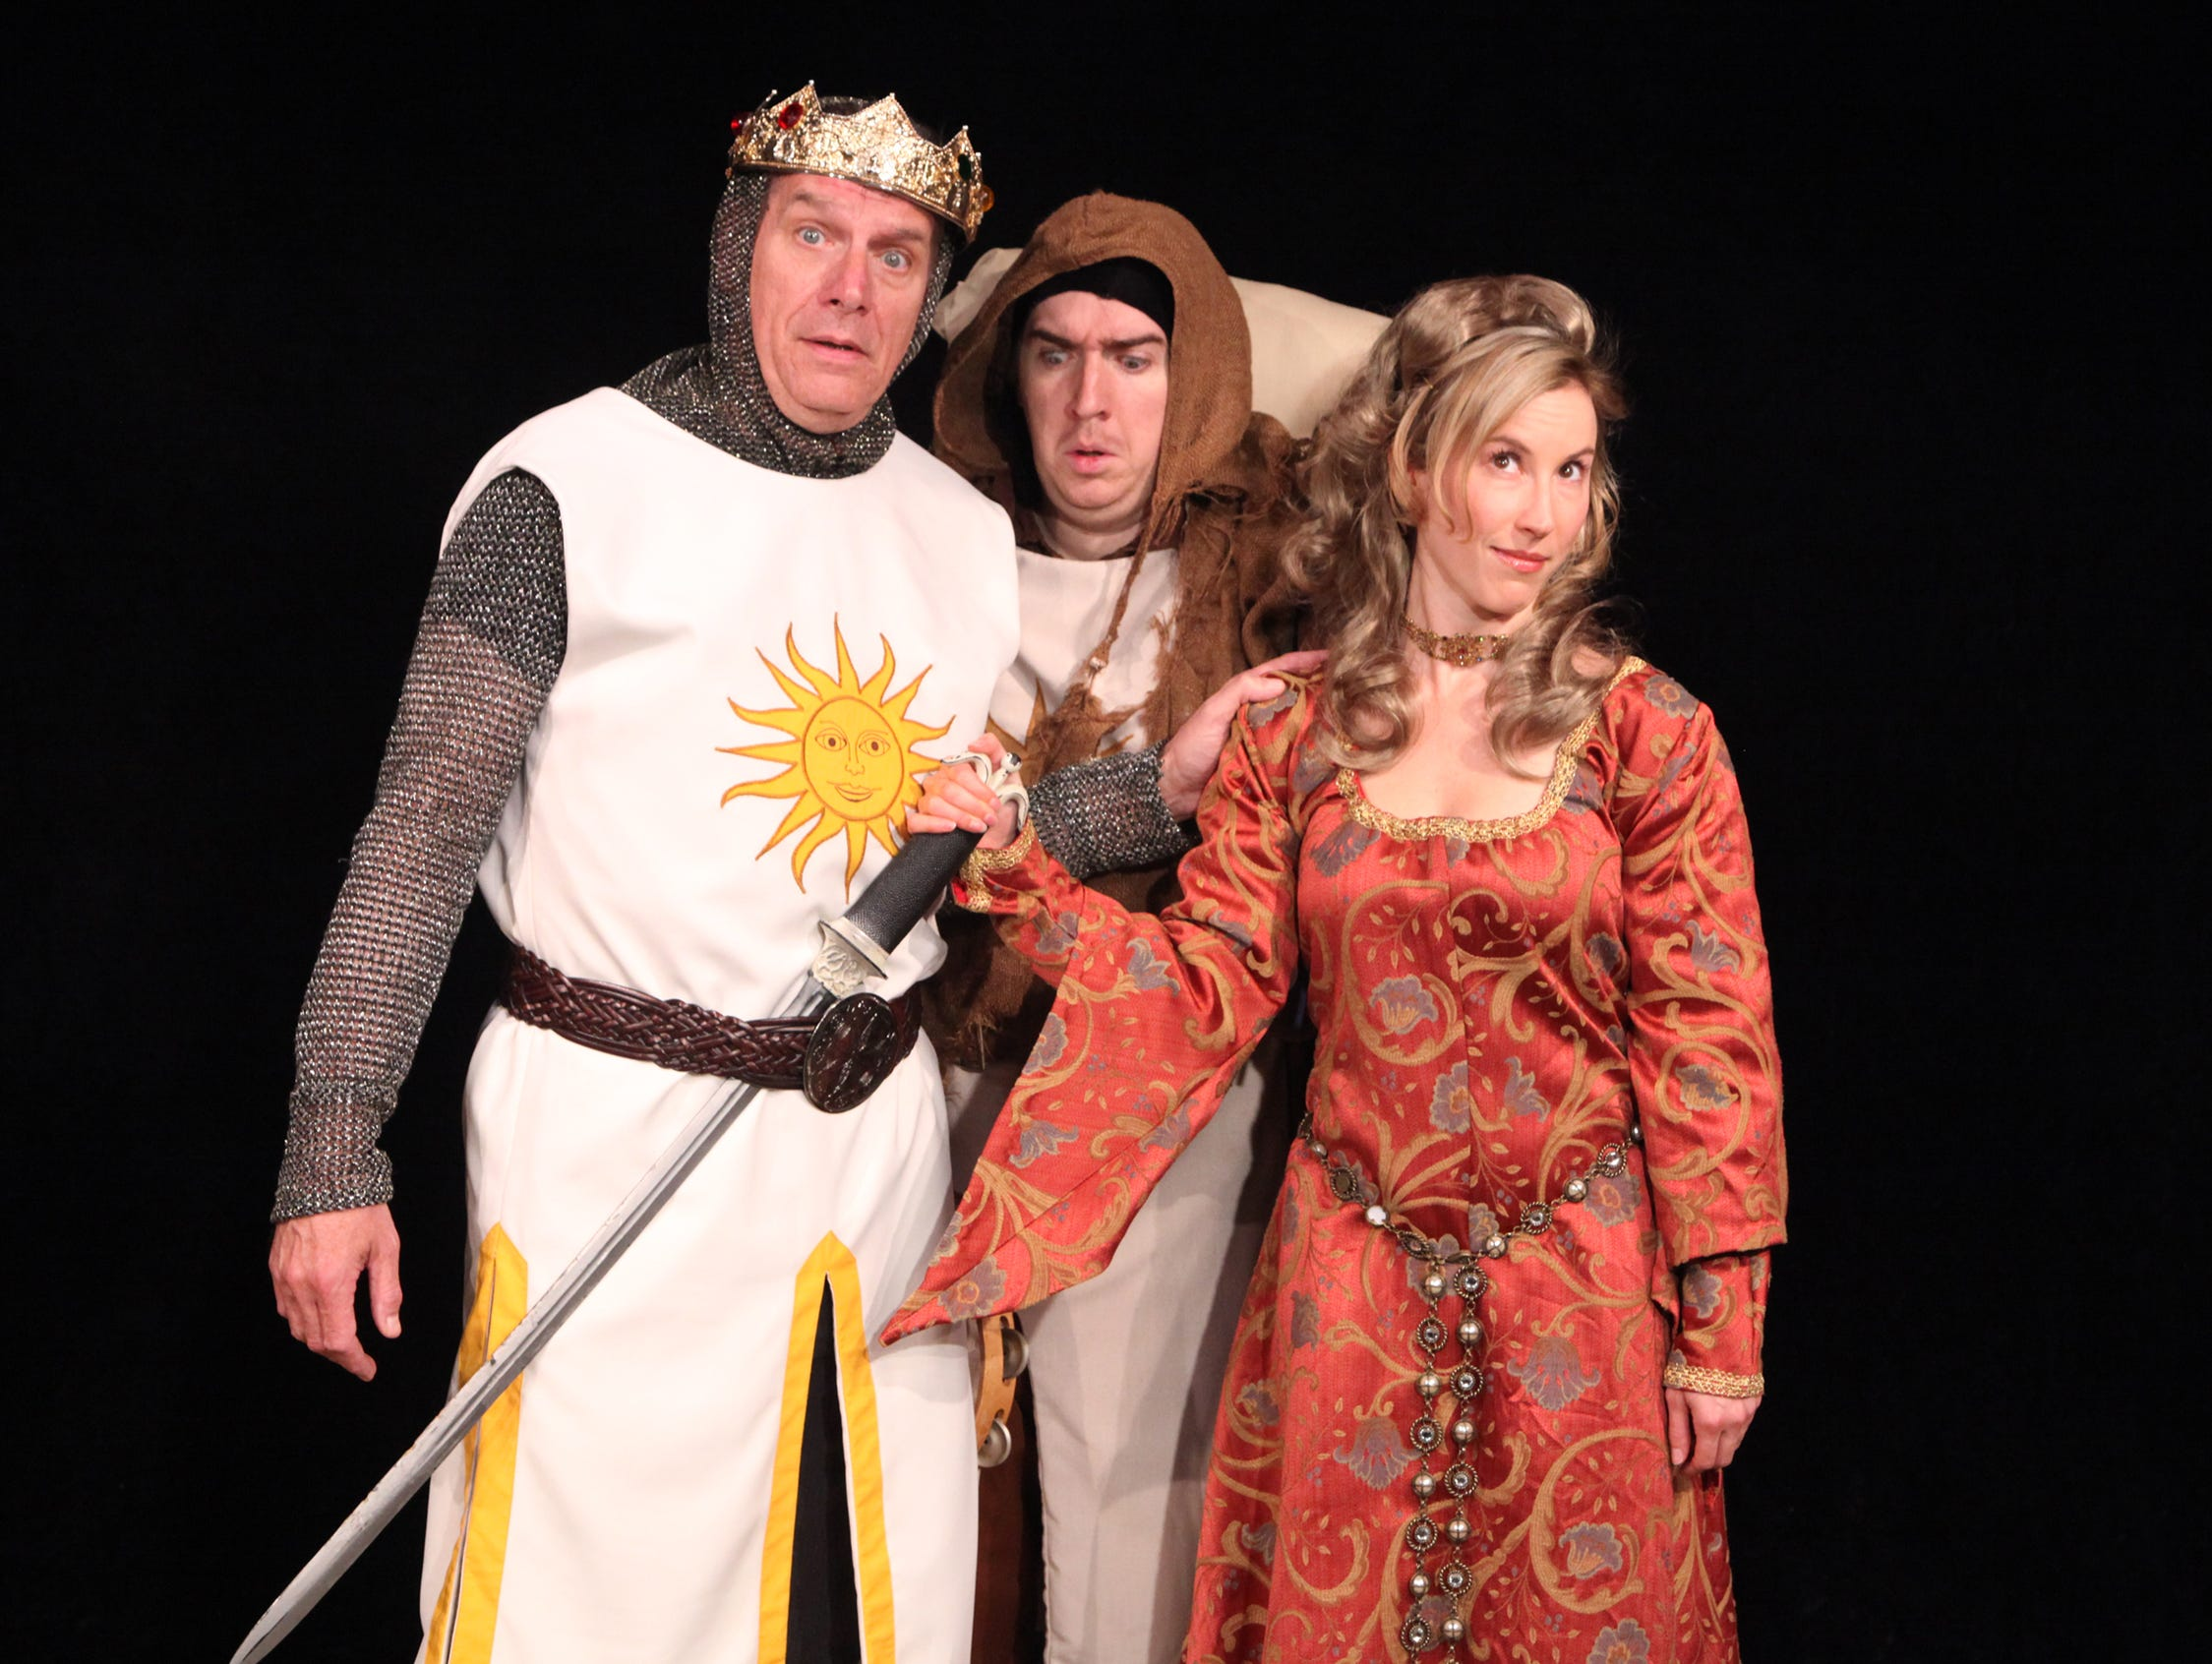 "Tom Kremer (King Arthur), Kevin Killavey (Patsy) and Marjorie Donovick (Lady of the Lake)  in the Cider Mill Playhouse production of Spamalot"" in 2014."